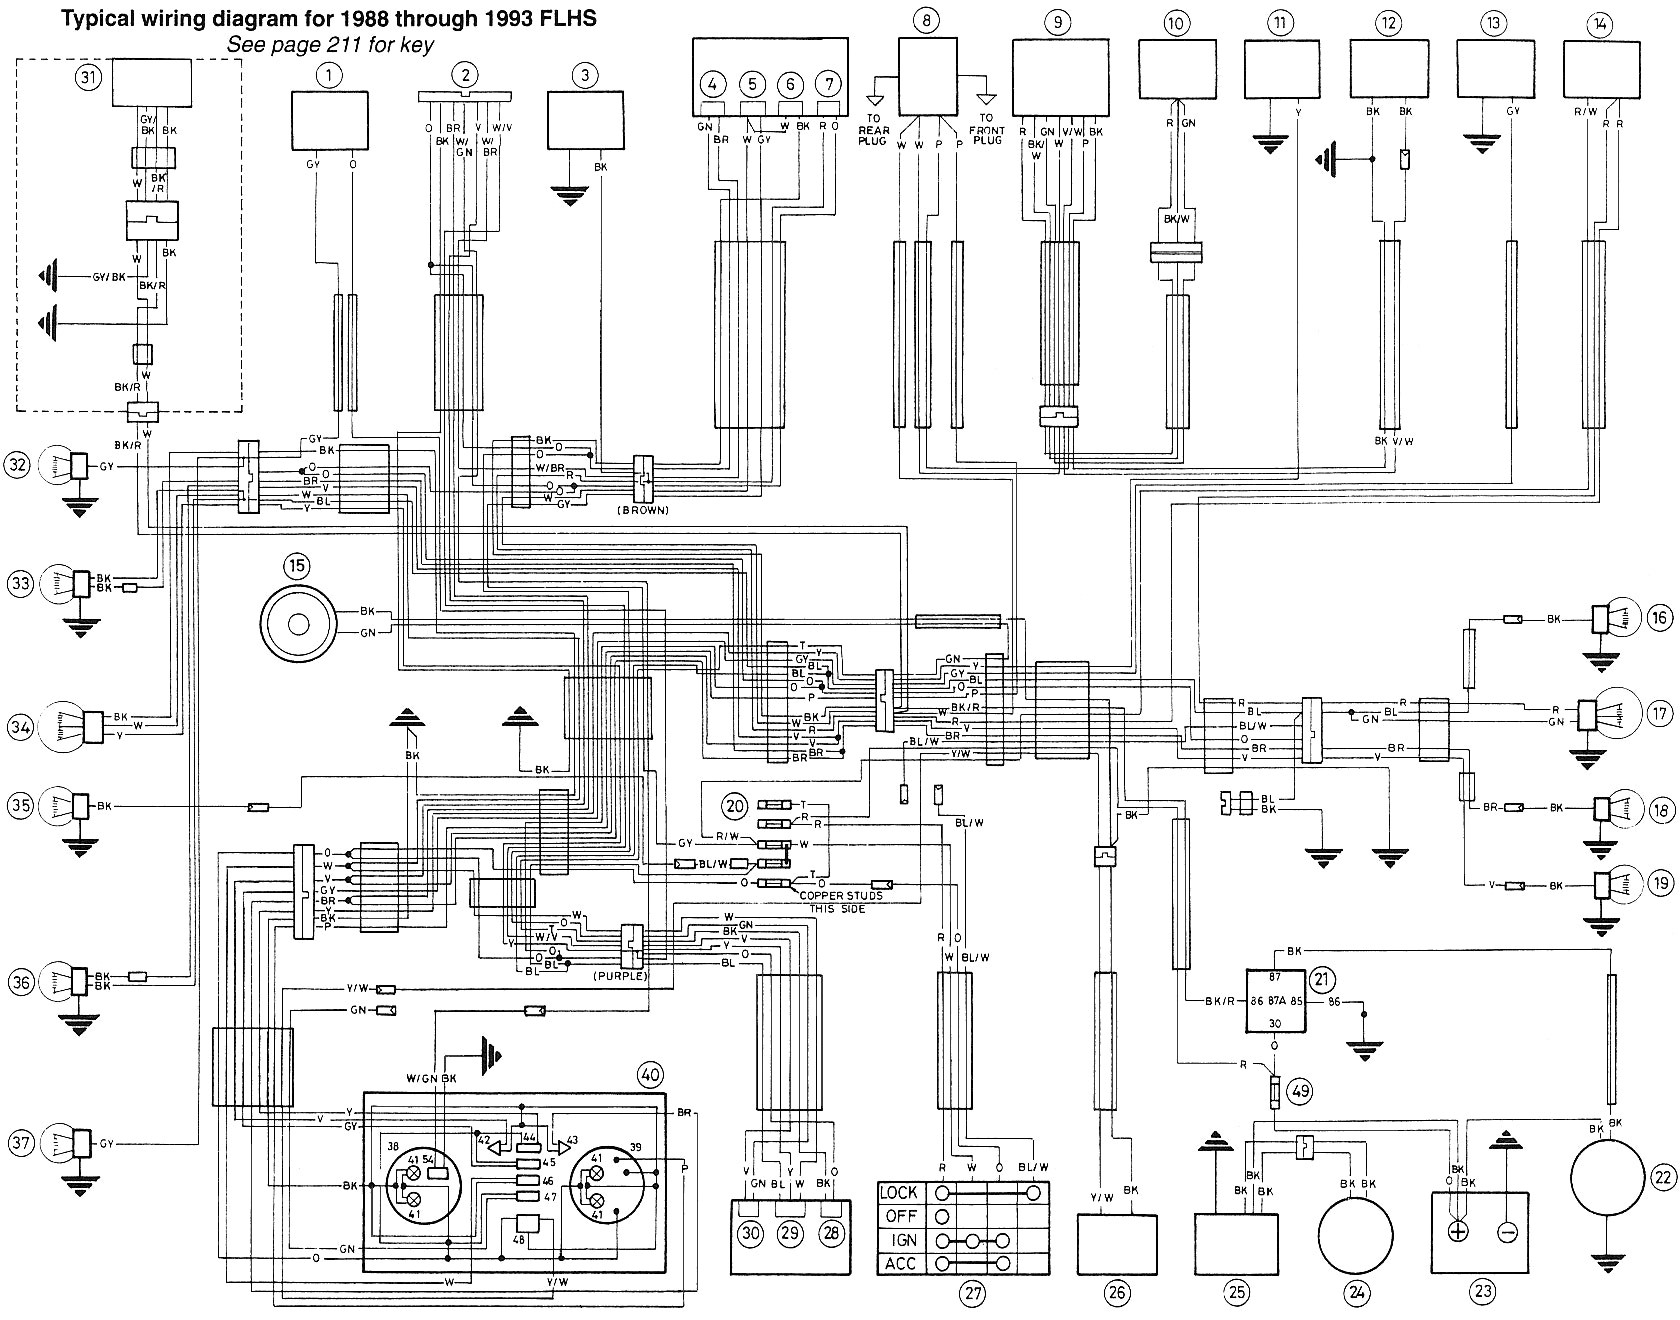 Wiring Diagram 2002 Harley Davidson Fatboy - Wiring Diagram Inside on